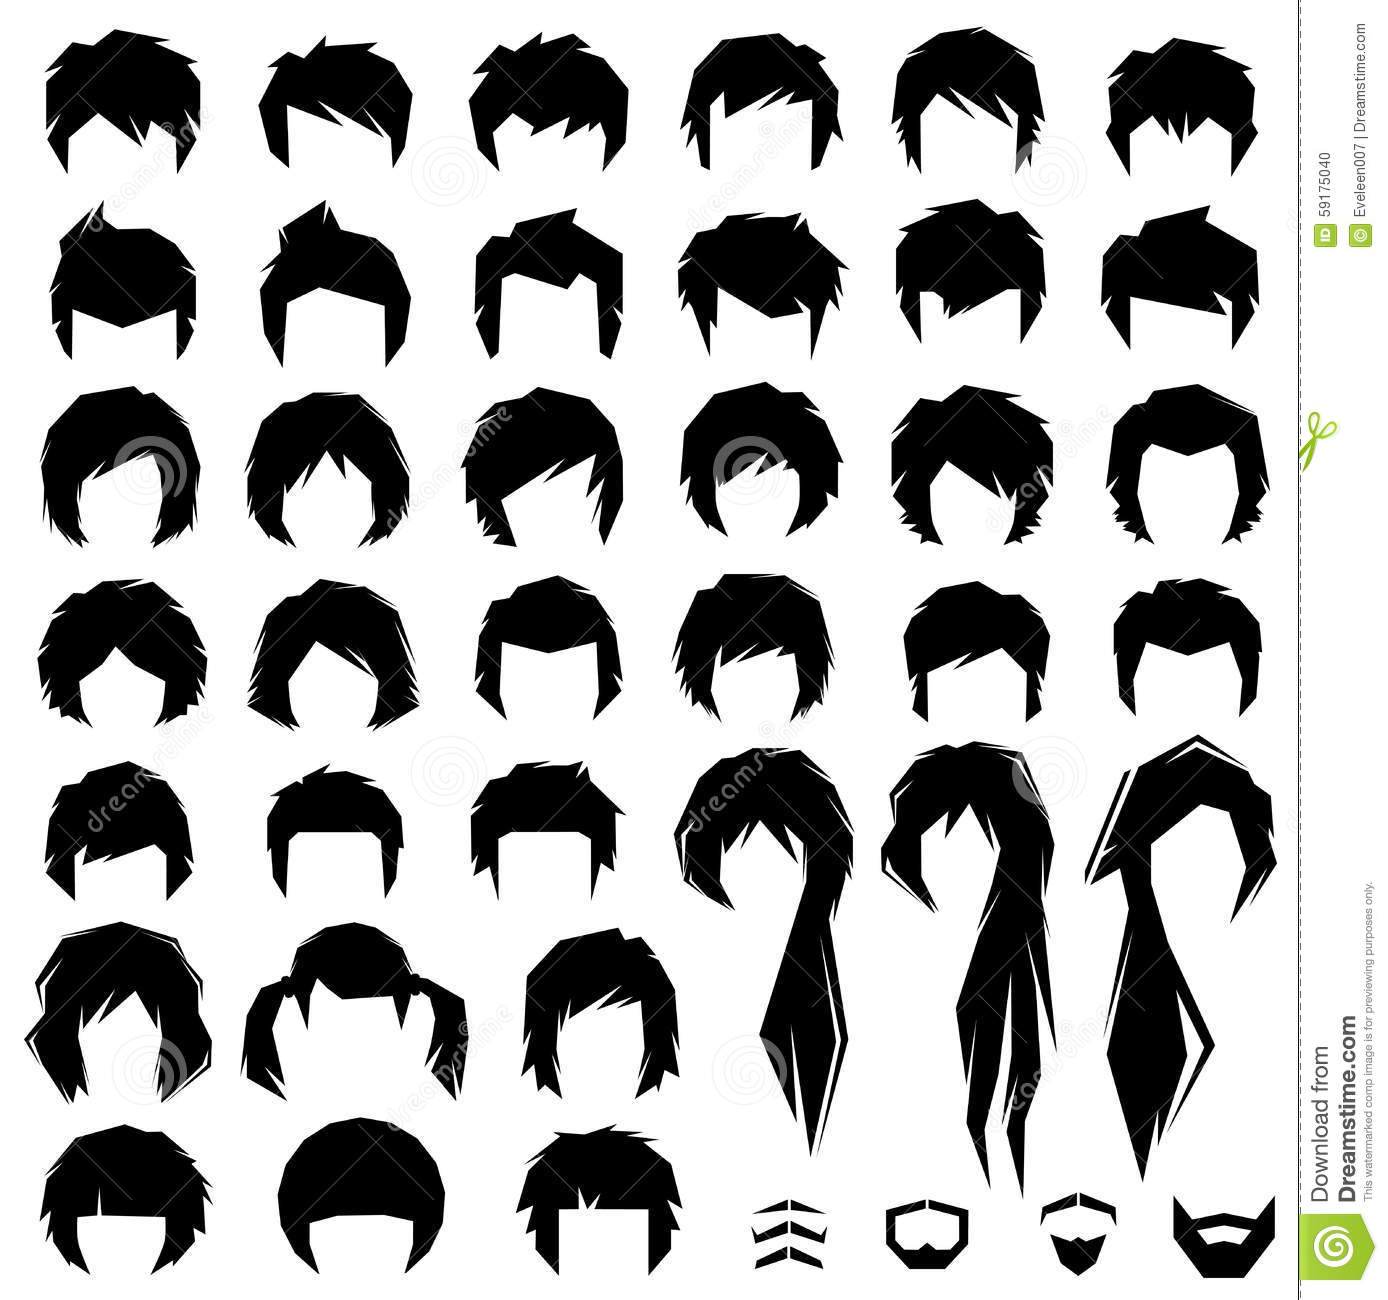 HD wallpapers different kinds of hairstyles and names